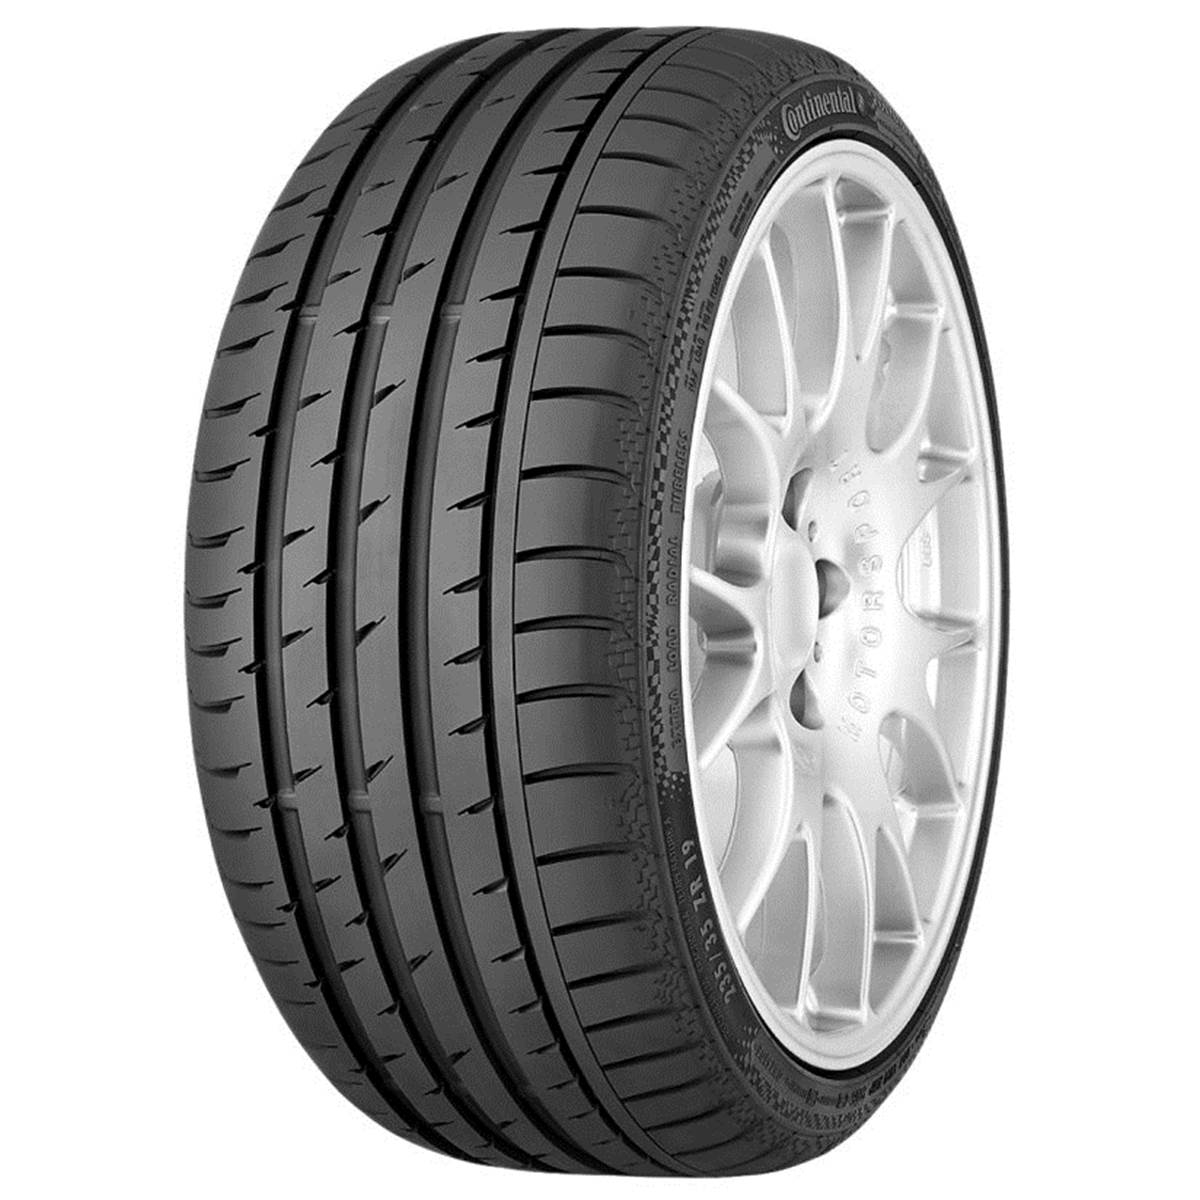 Continental Conti Sportcontact 3 Ssr (*) / Fuel Efficiency: F, Wet Grip: C, Ext. Rolling Noise: 71db, Rolling Noise Class: B